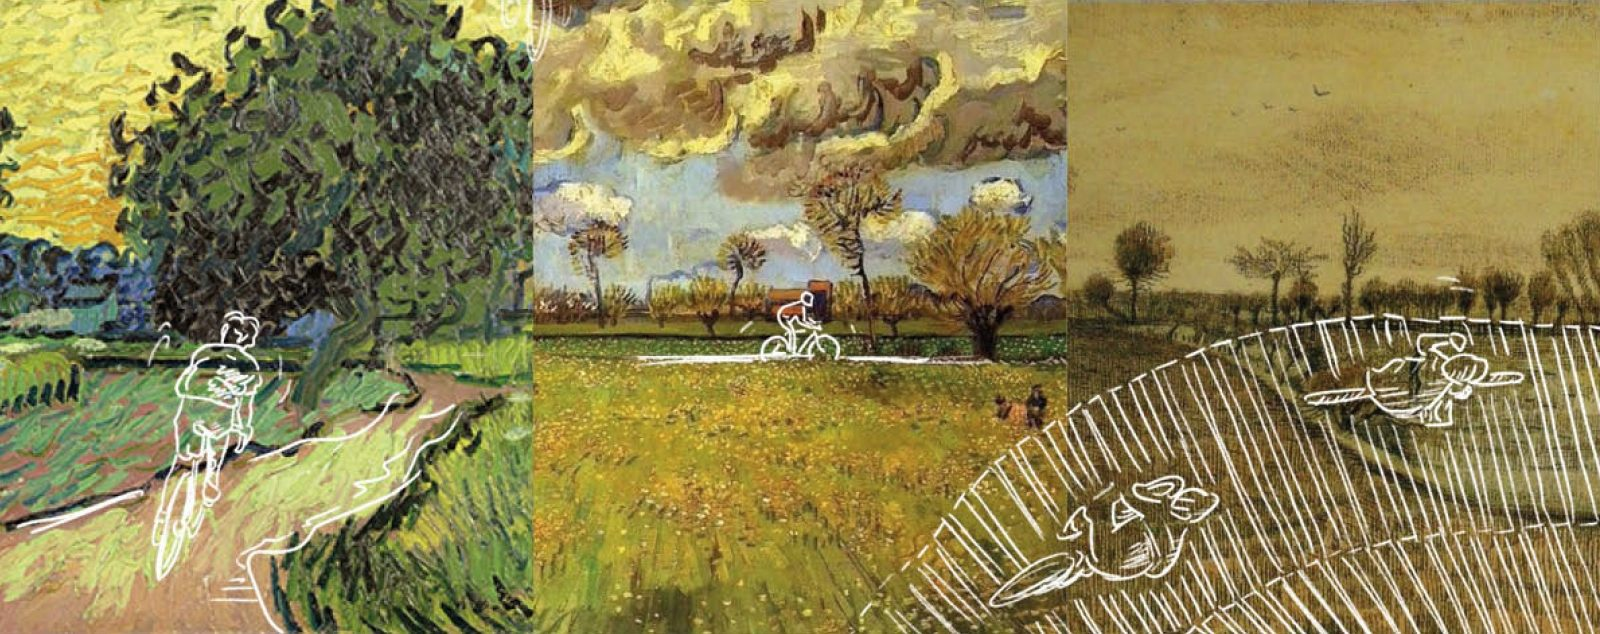 kinetic creative van gogh experience